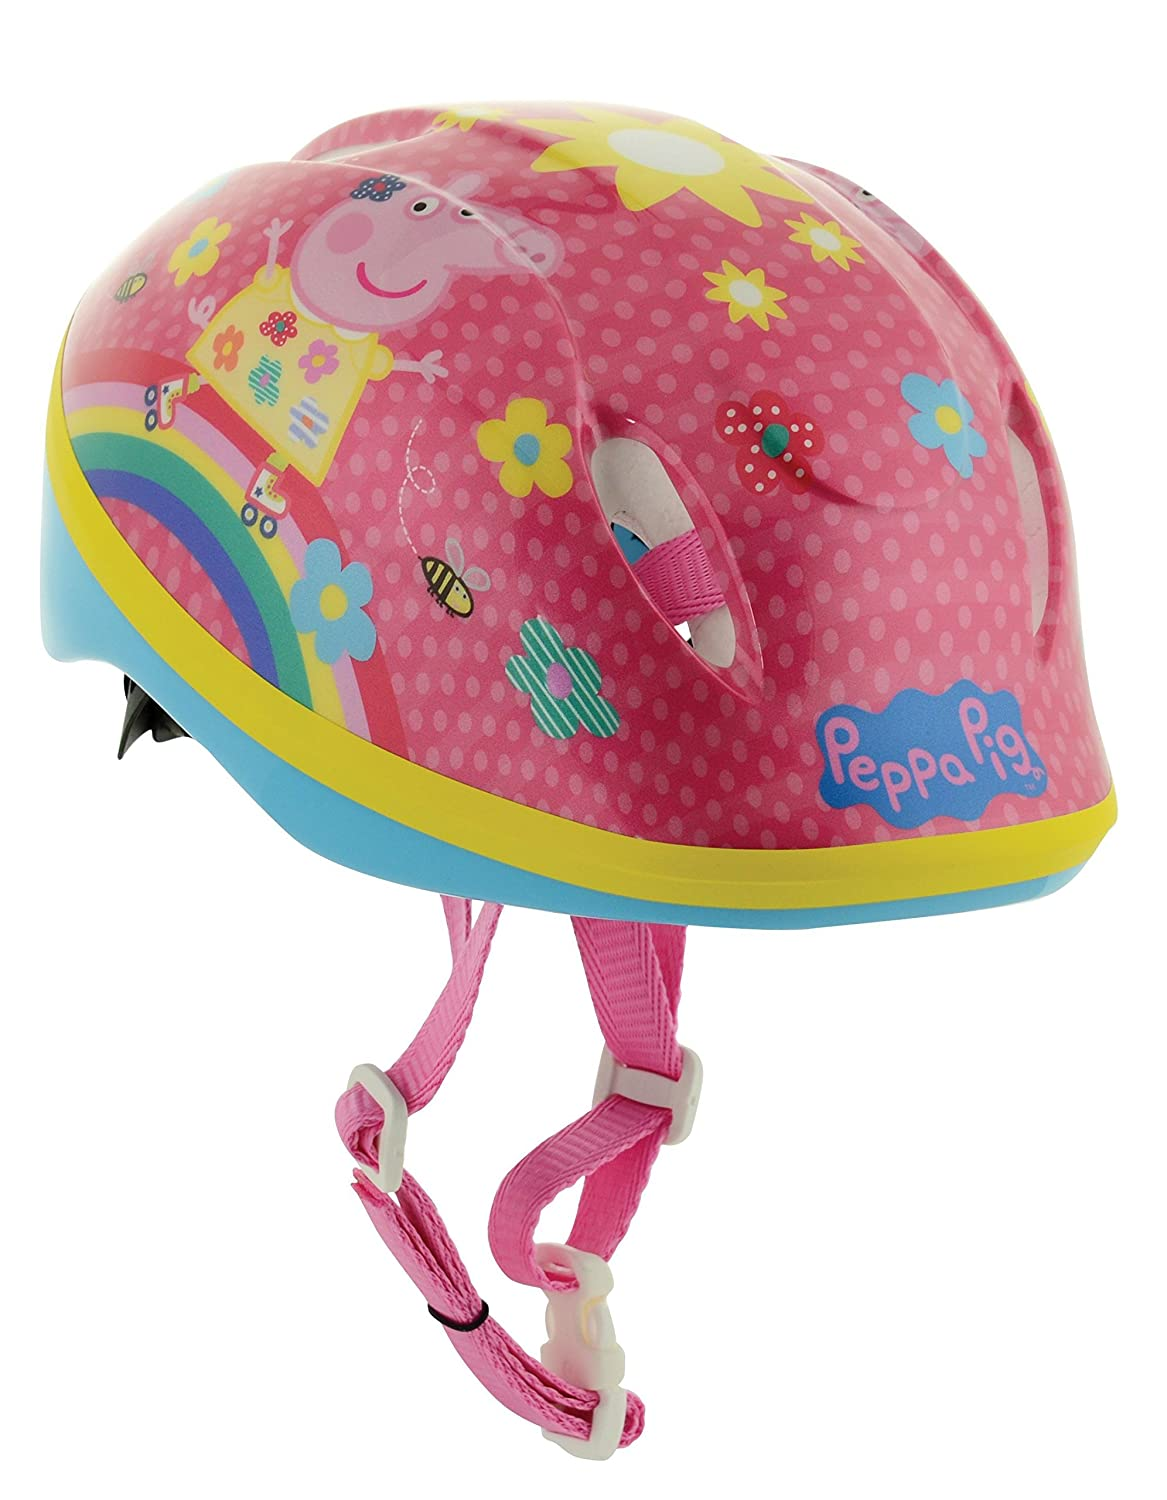 Peppa Pig Safety Casco, Niñas: Amazon.es: Deportes y aire libre